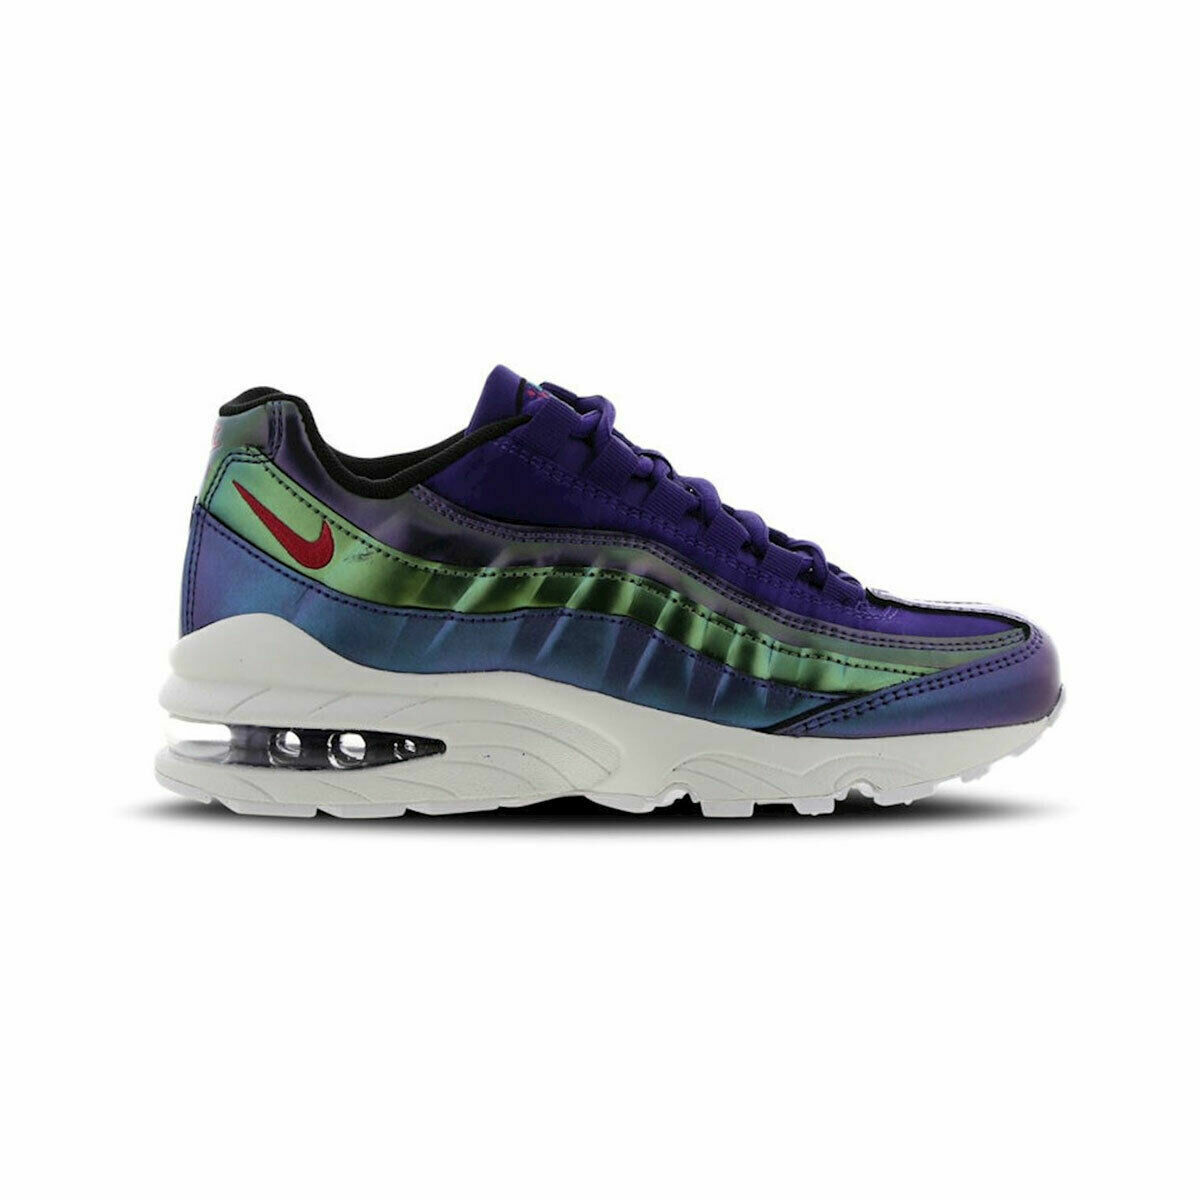 Nike Air Max 95 SE GS Youth Size 7y Running Shoes Aj1899 500 Purple